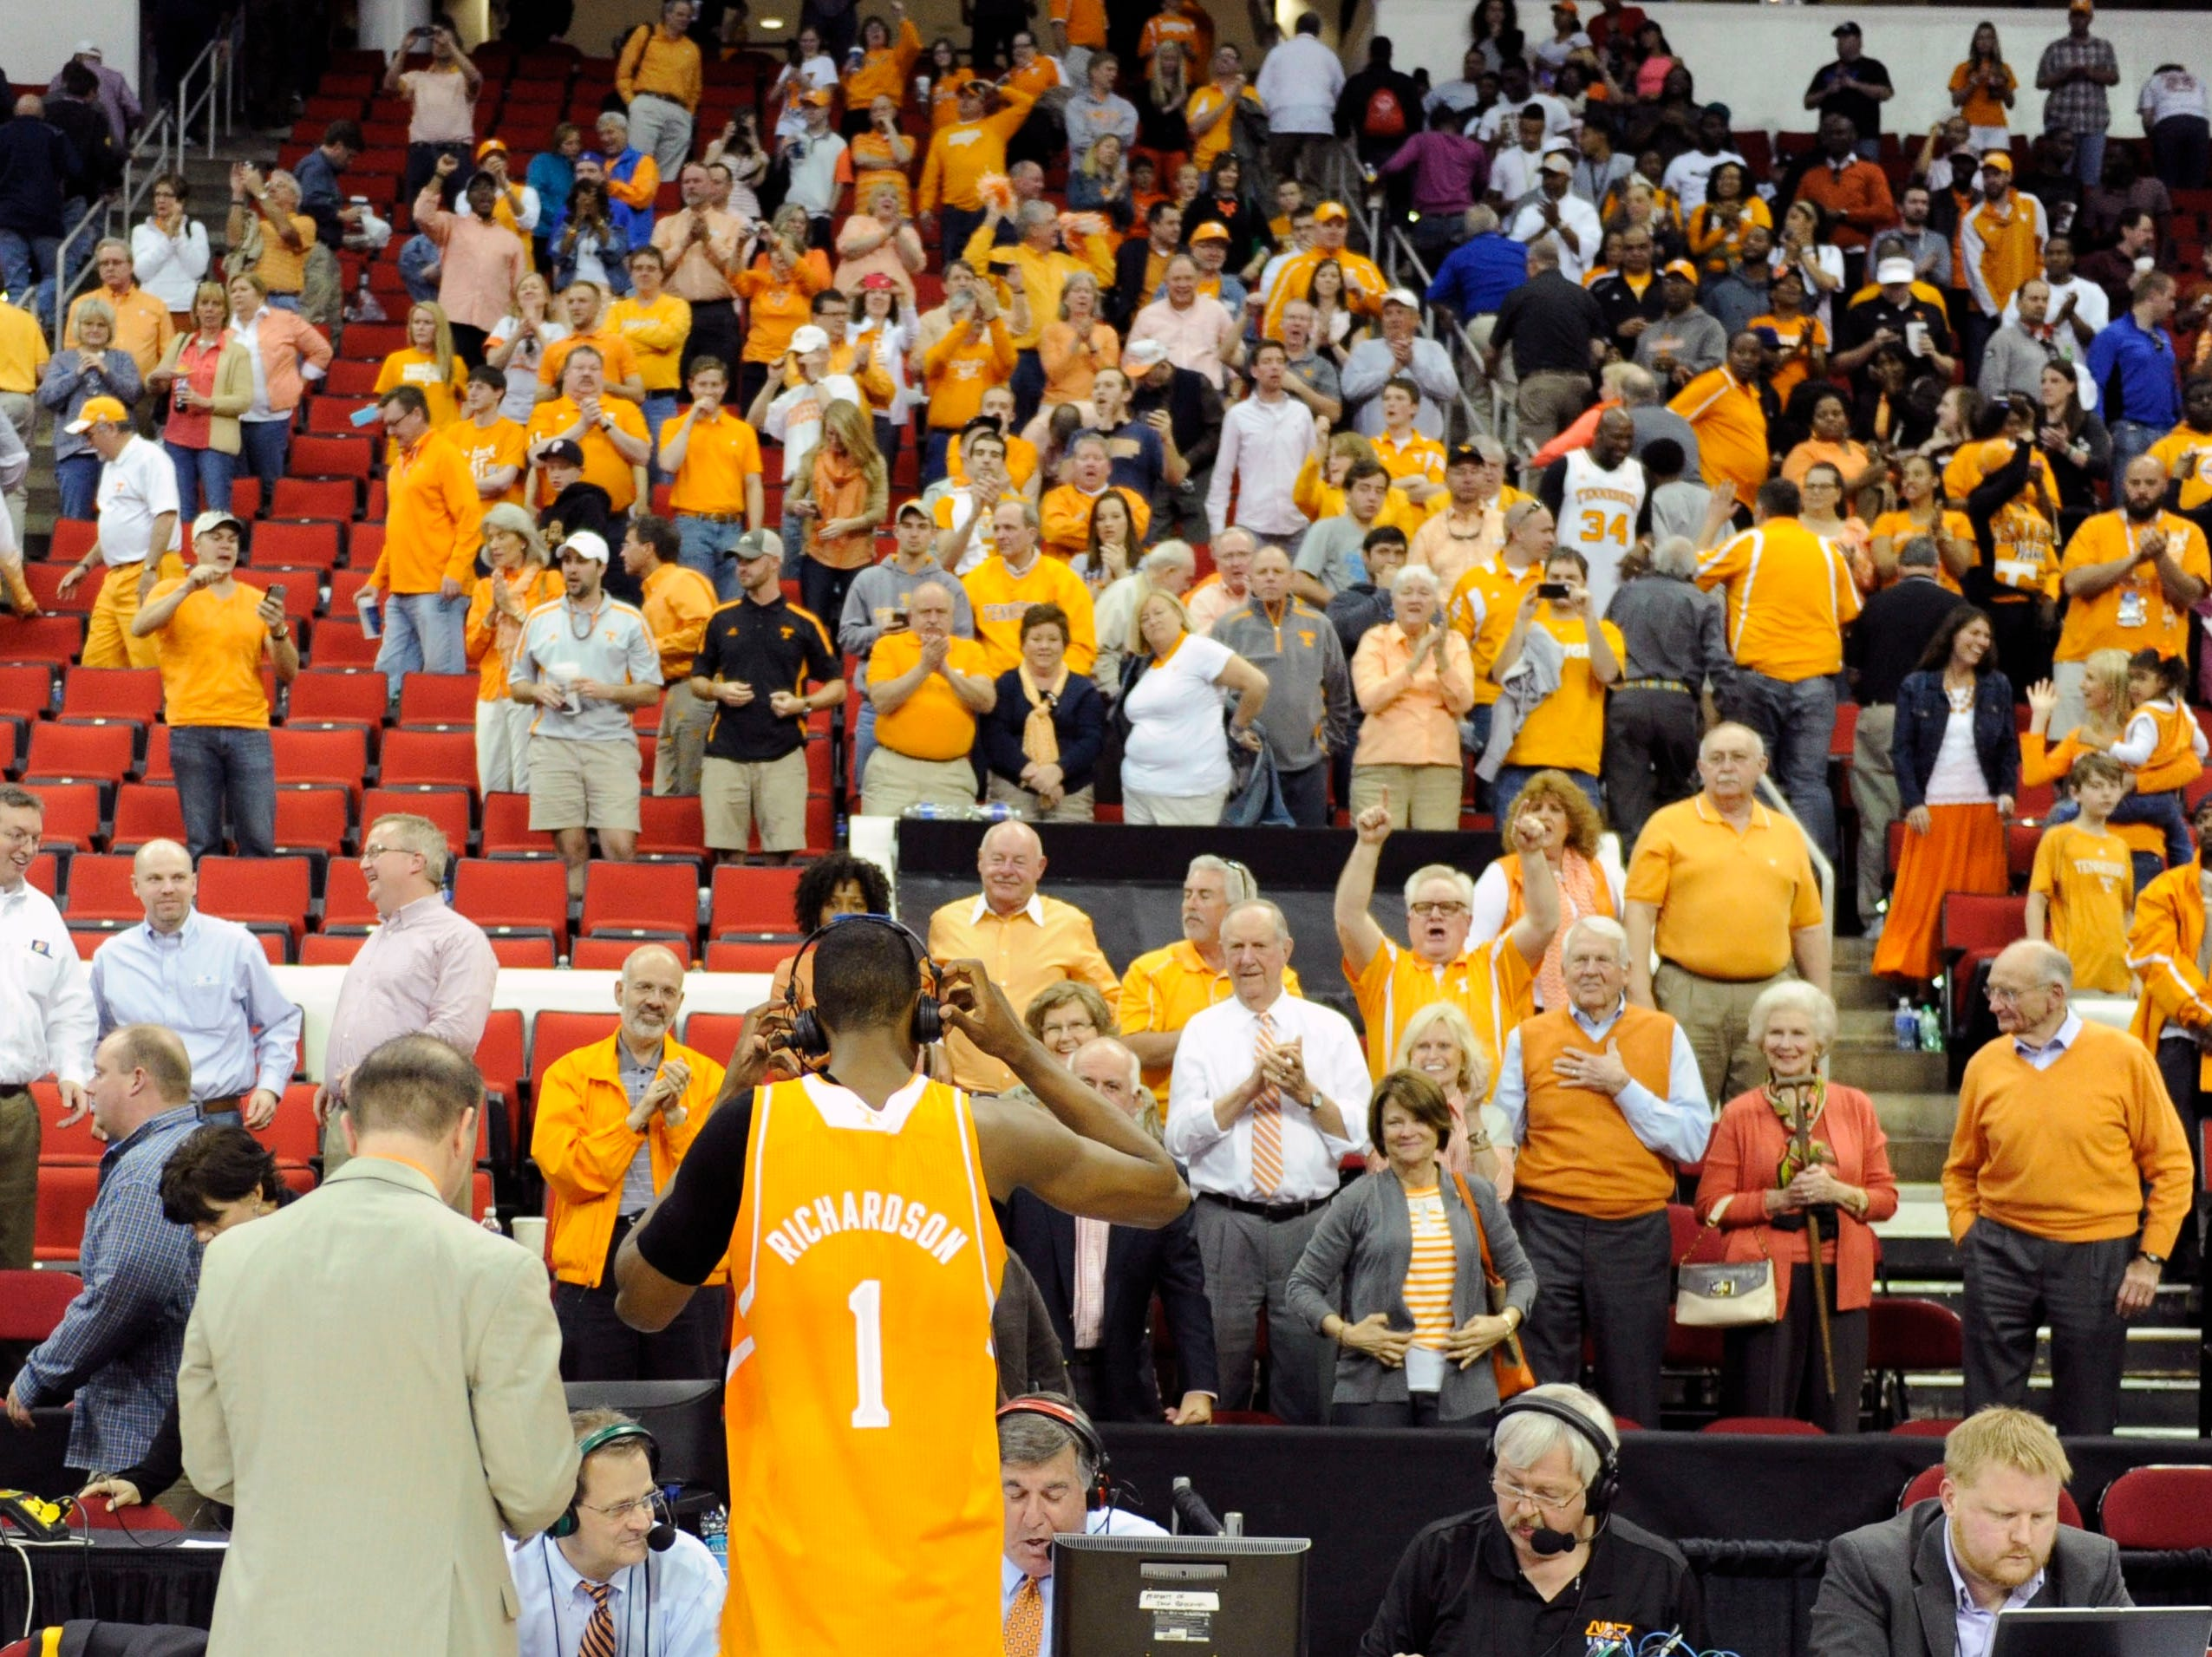 Tennessee fans applaud Tennessee guard Josh Richardson (1) following Tennessee's 86-67 defeat of Massachusetts in the second half of an NCAA tournament game at the PNC Arena in Raleigh, N.C. on Friday, March 21, 2014.